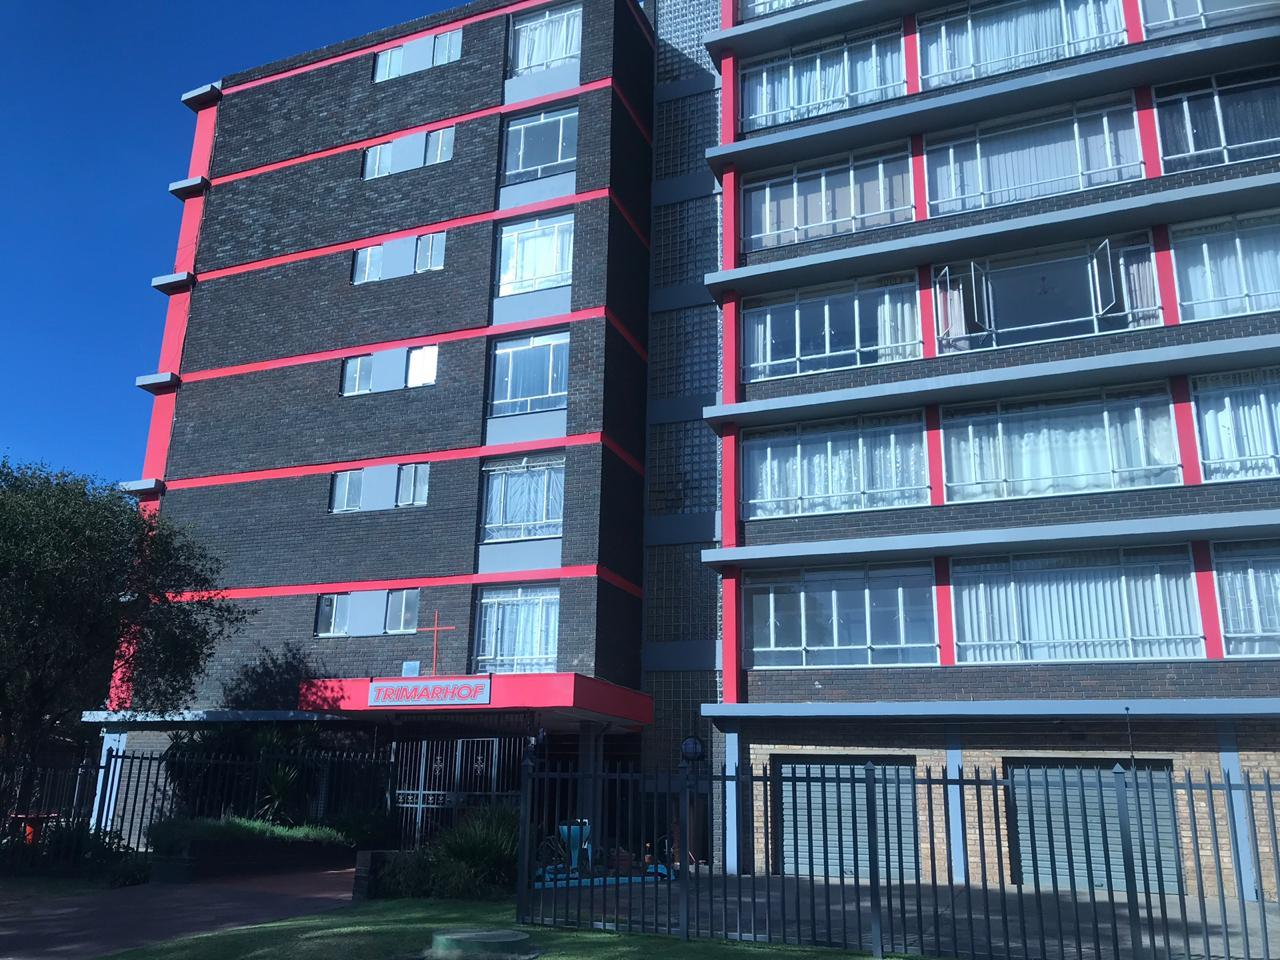 2 Bedroom Apartment / Flat For Sale in Witbank Central